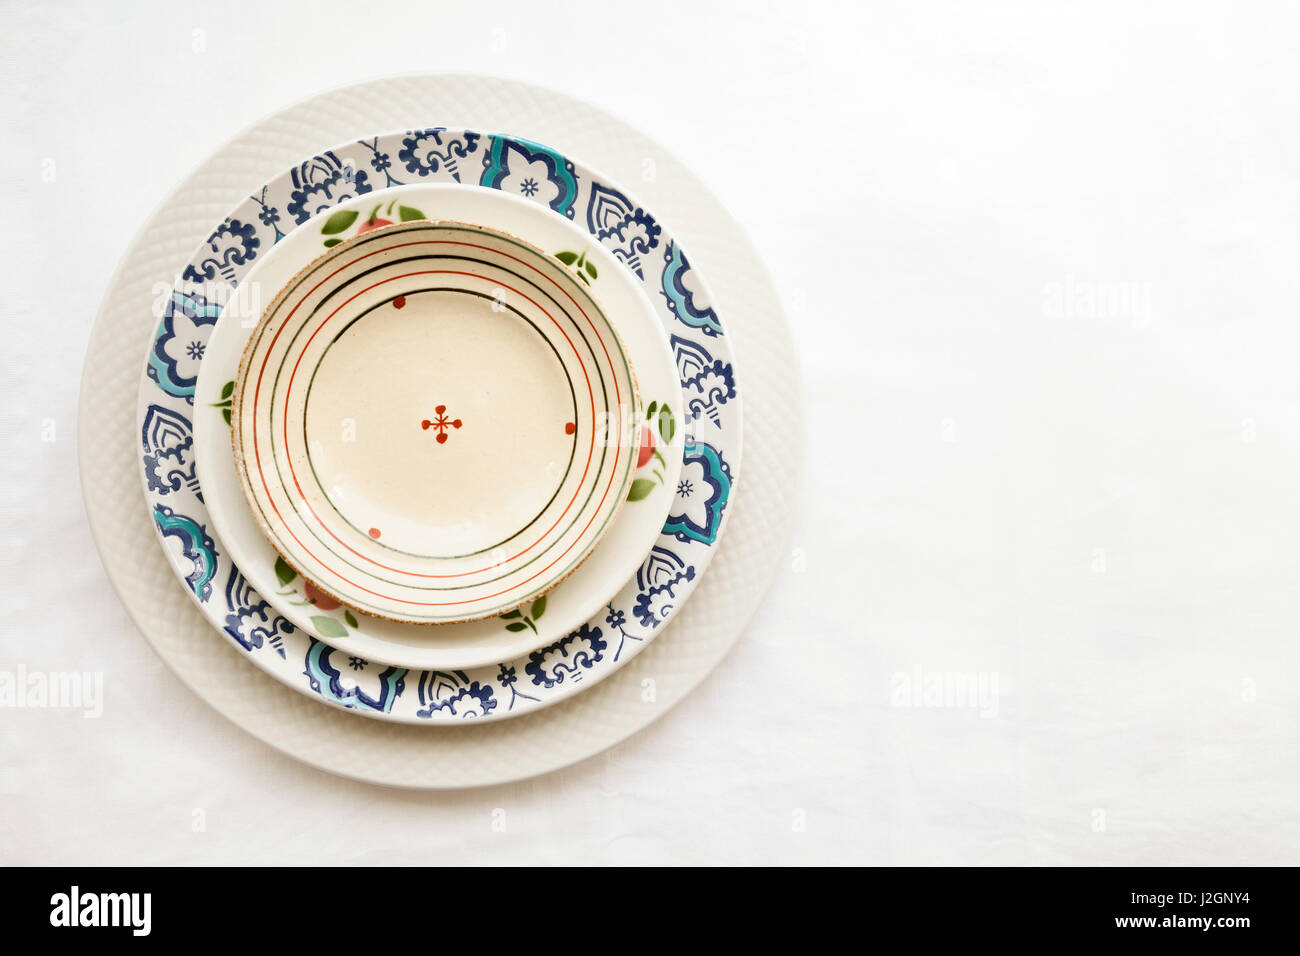 Stack of empty ceramic plates isolated on white background with copy space. Cheerful colorful dishes & Colorful Art Ceramic Plates Stock Photos u0026 Colorful Art Ceramic ...